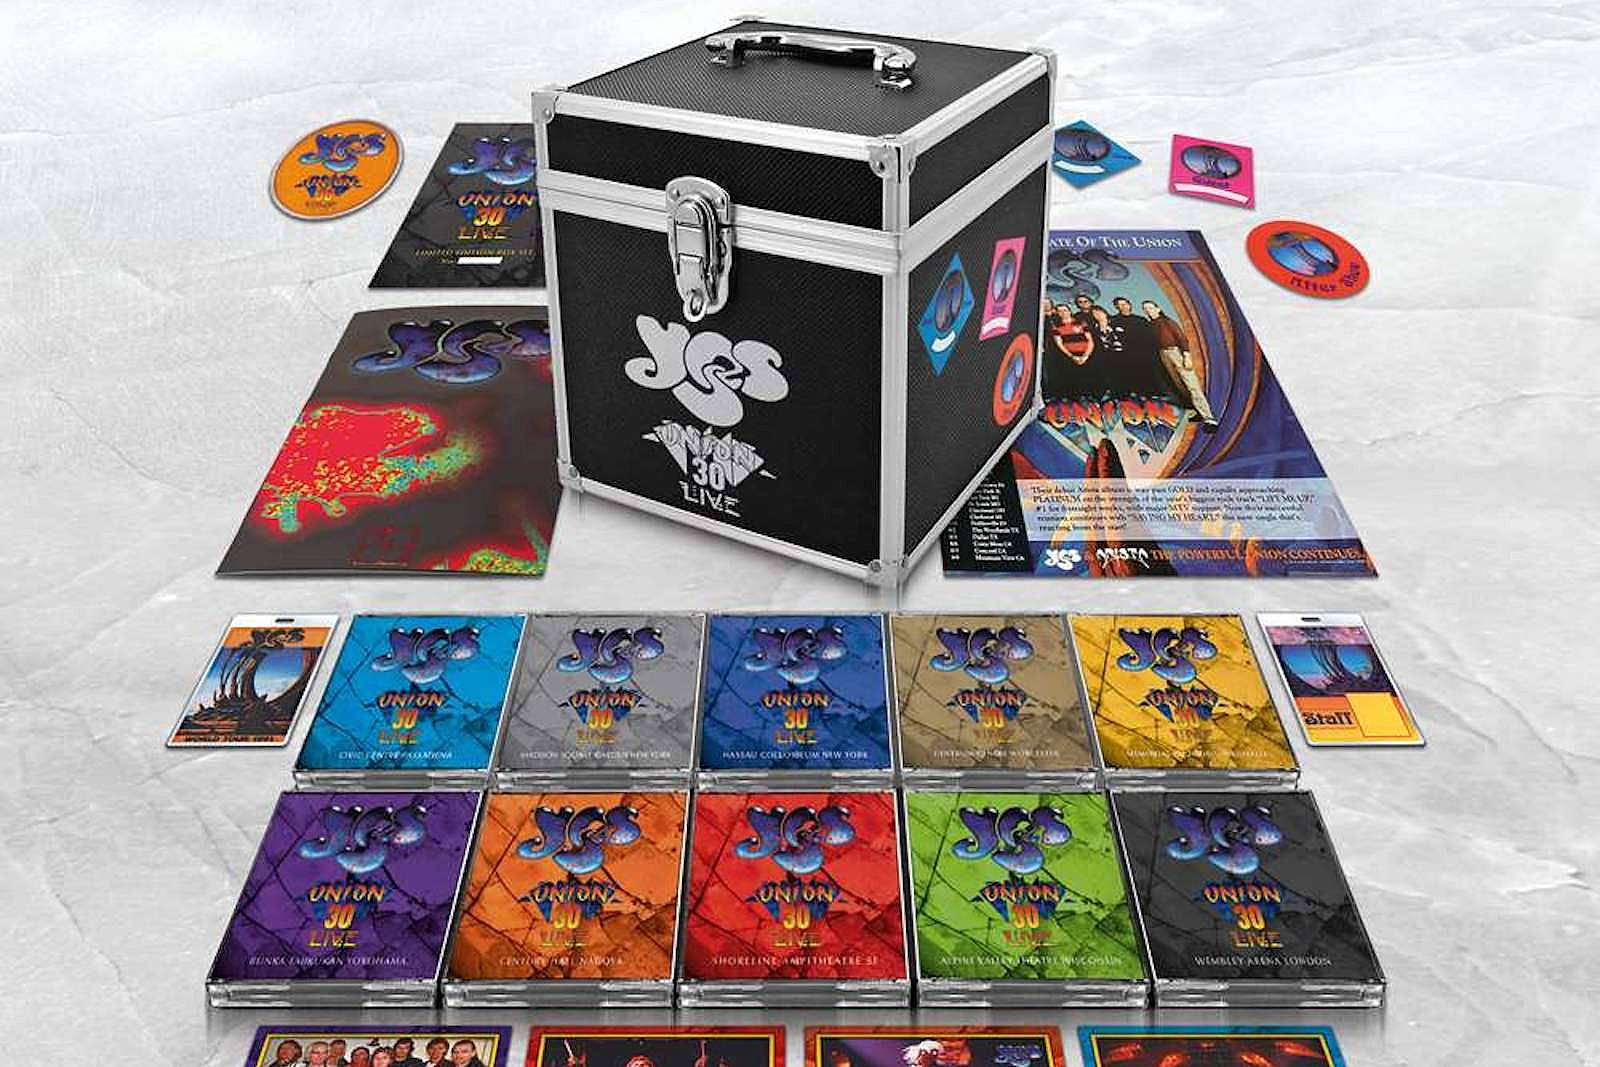 Yes Release 30-Disc 'Union Live' Anniversary Box Set